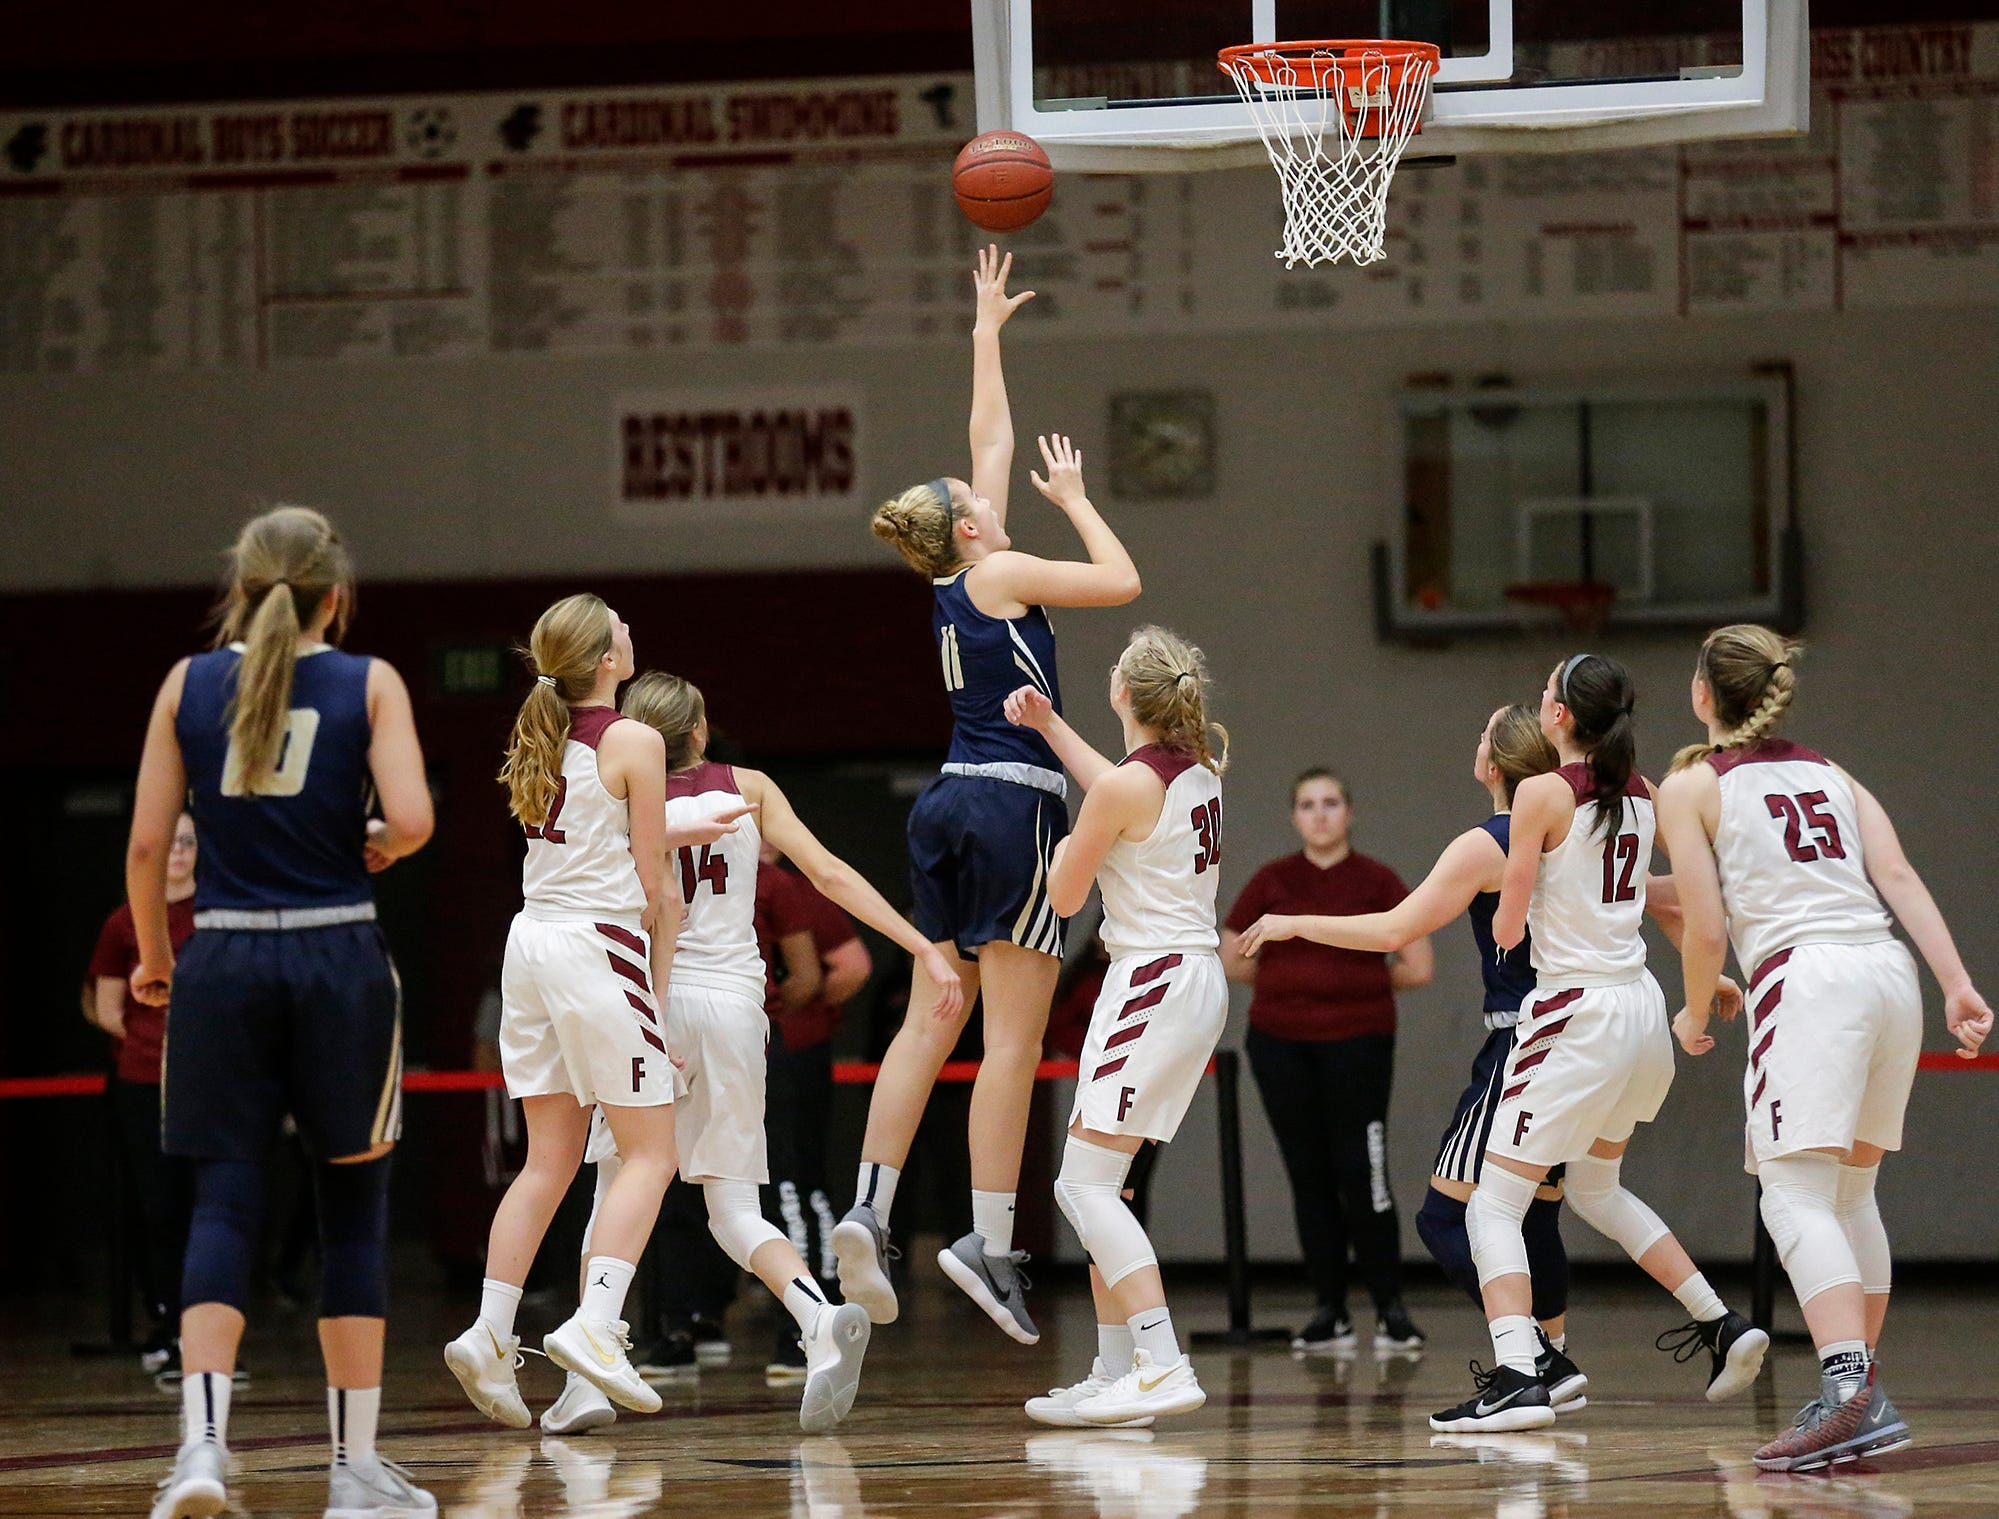 Appleton North High School girls basketball's Emma Erickson goes up for a basket against Fond du Lac High School during their game Tuesday, December 4, 2018 in Fond du Lac, Wisconsin. Doug Raflik/USA TODAY NETWORK-Wisconsin